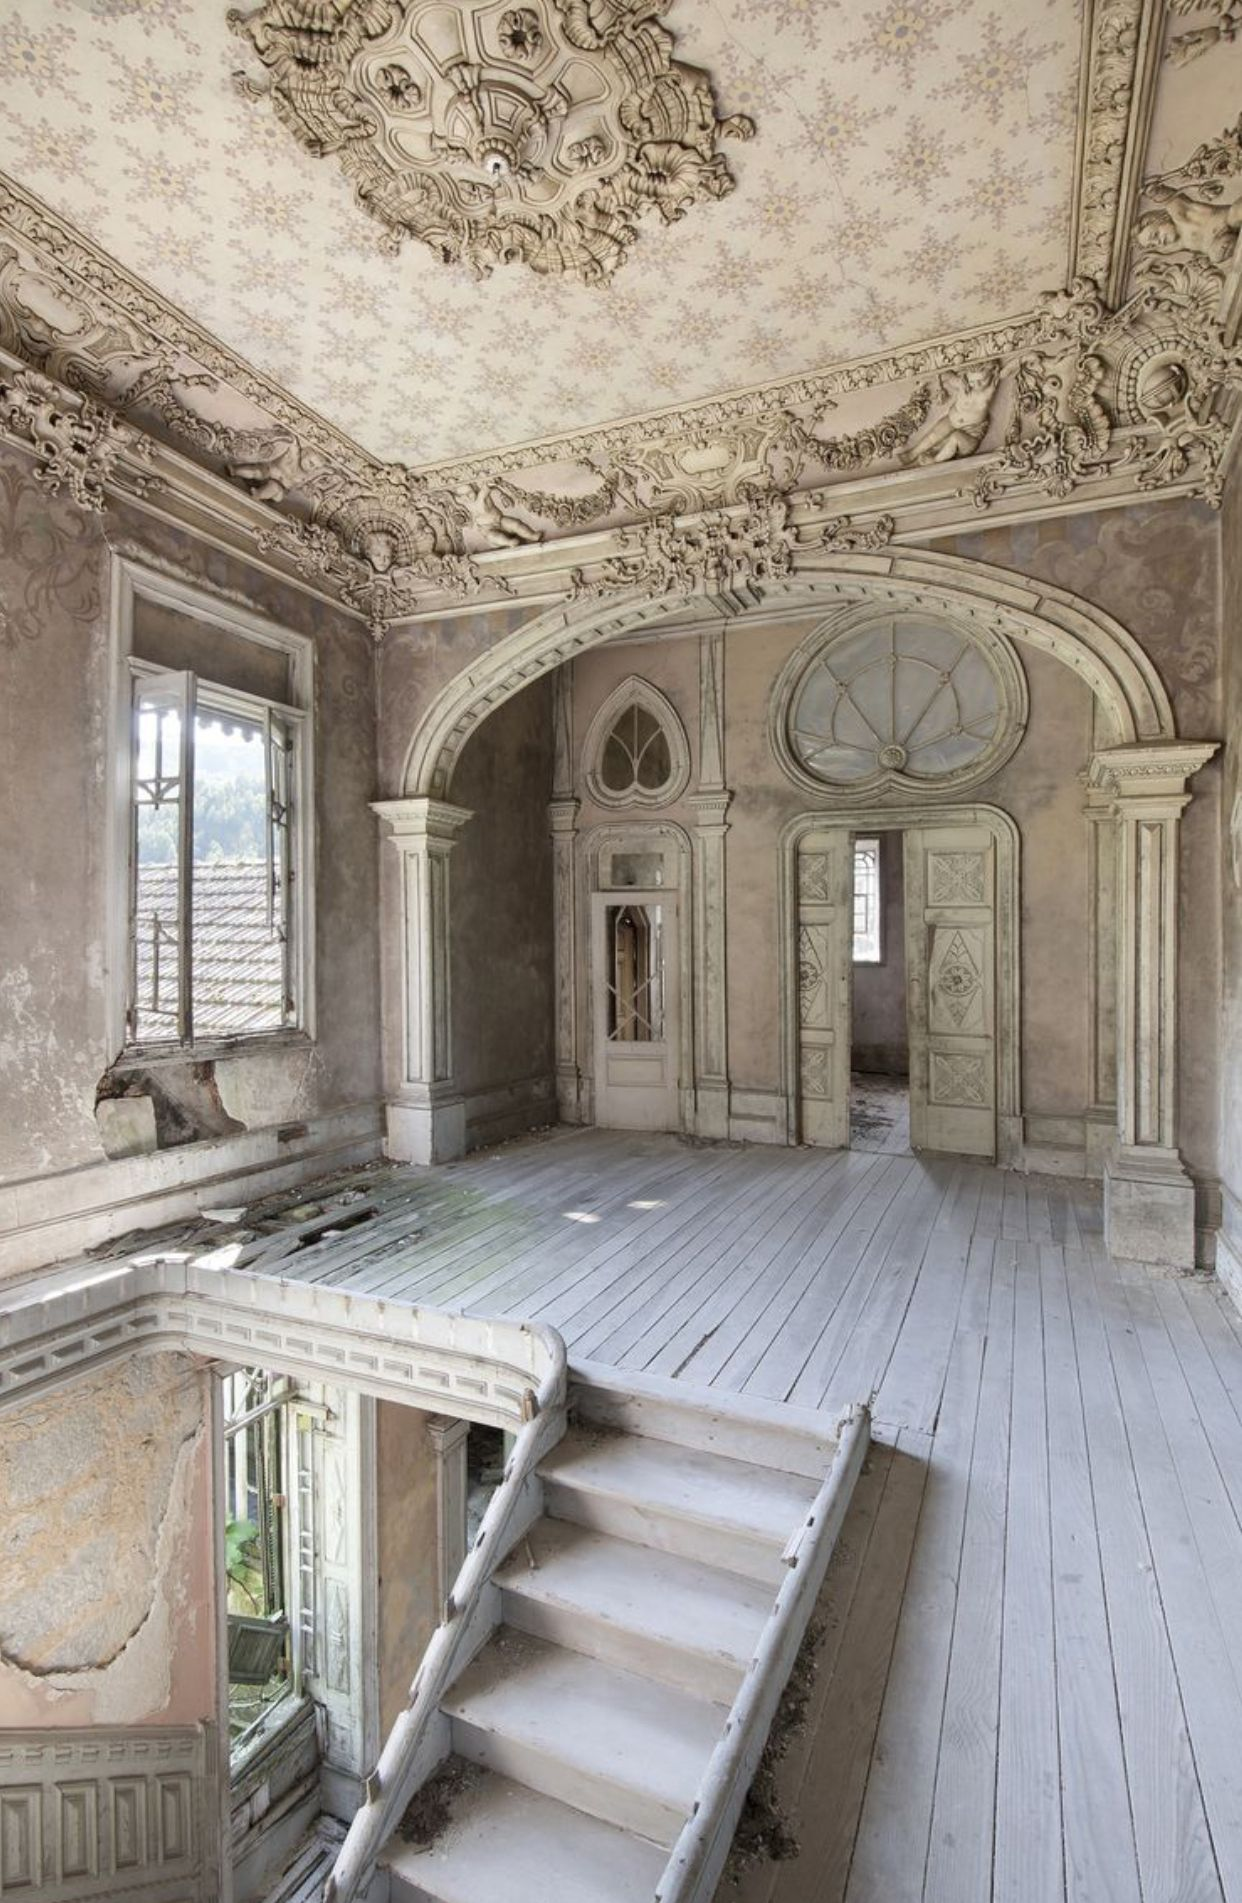 Old but look at the detail in the design #abandonedplaces